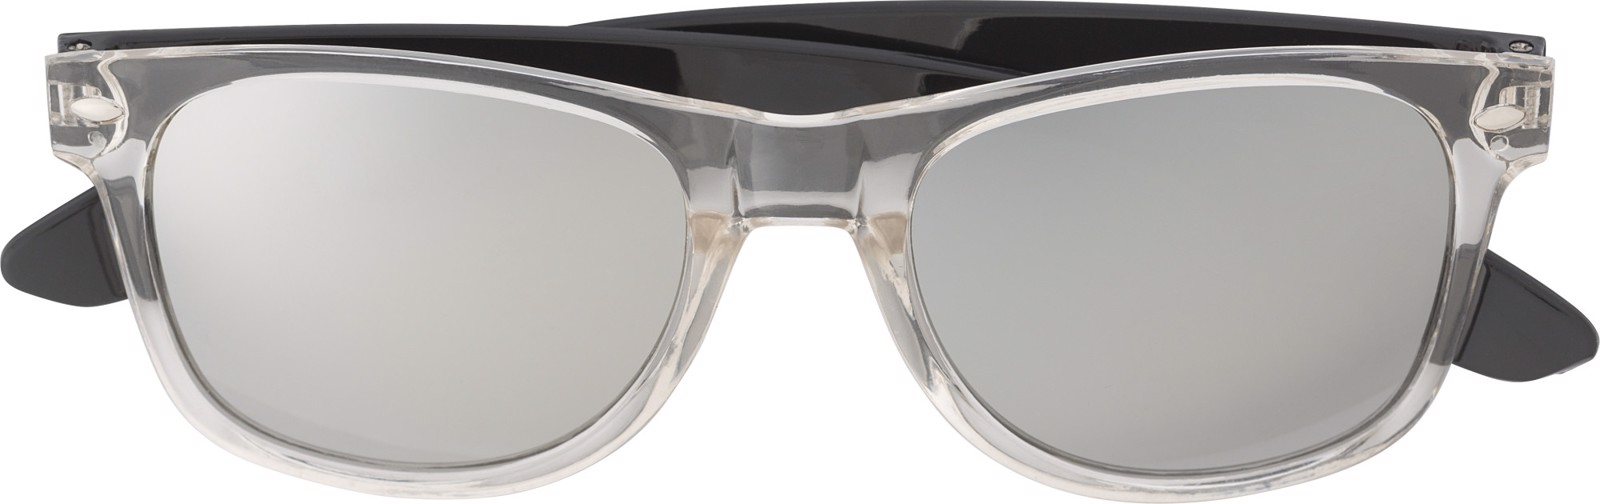 Acrylic sunglasses - Black